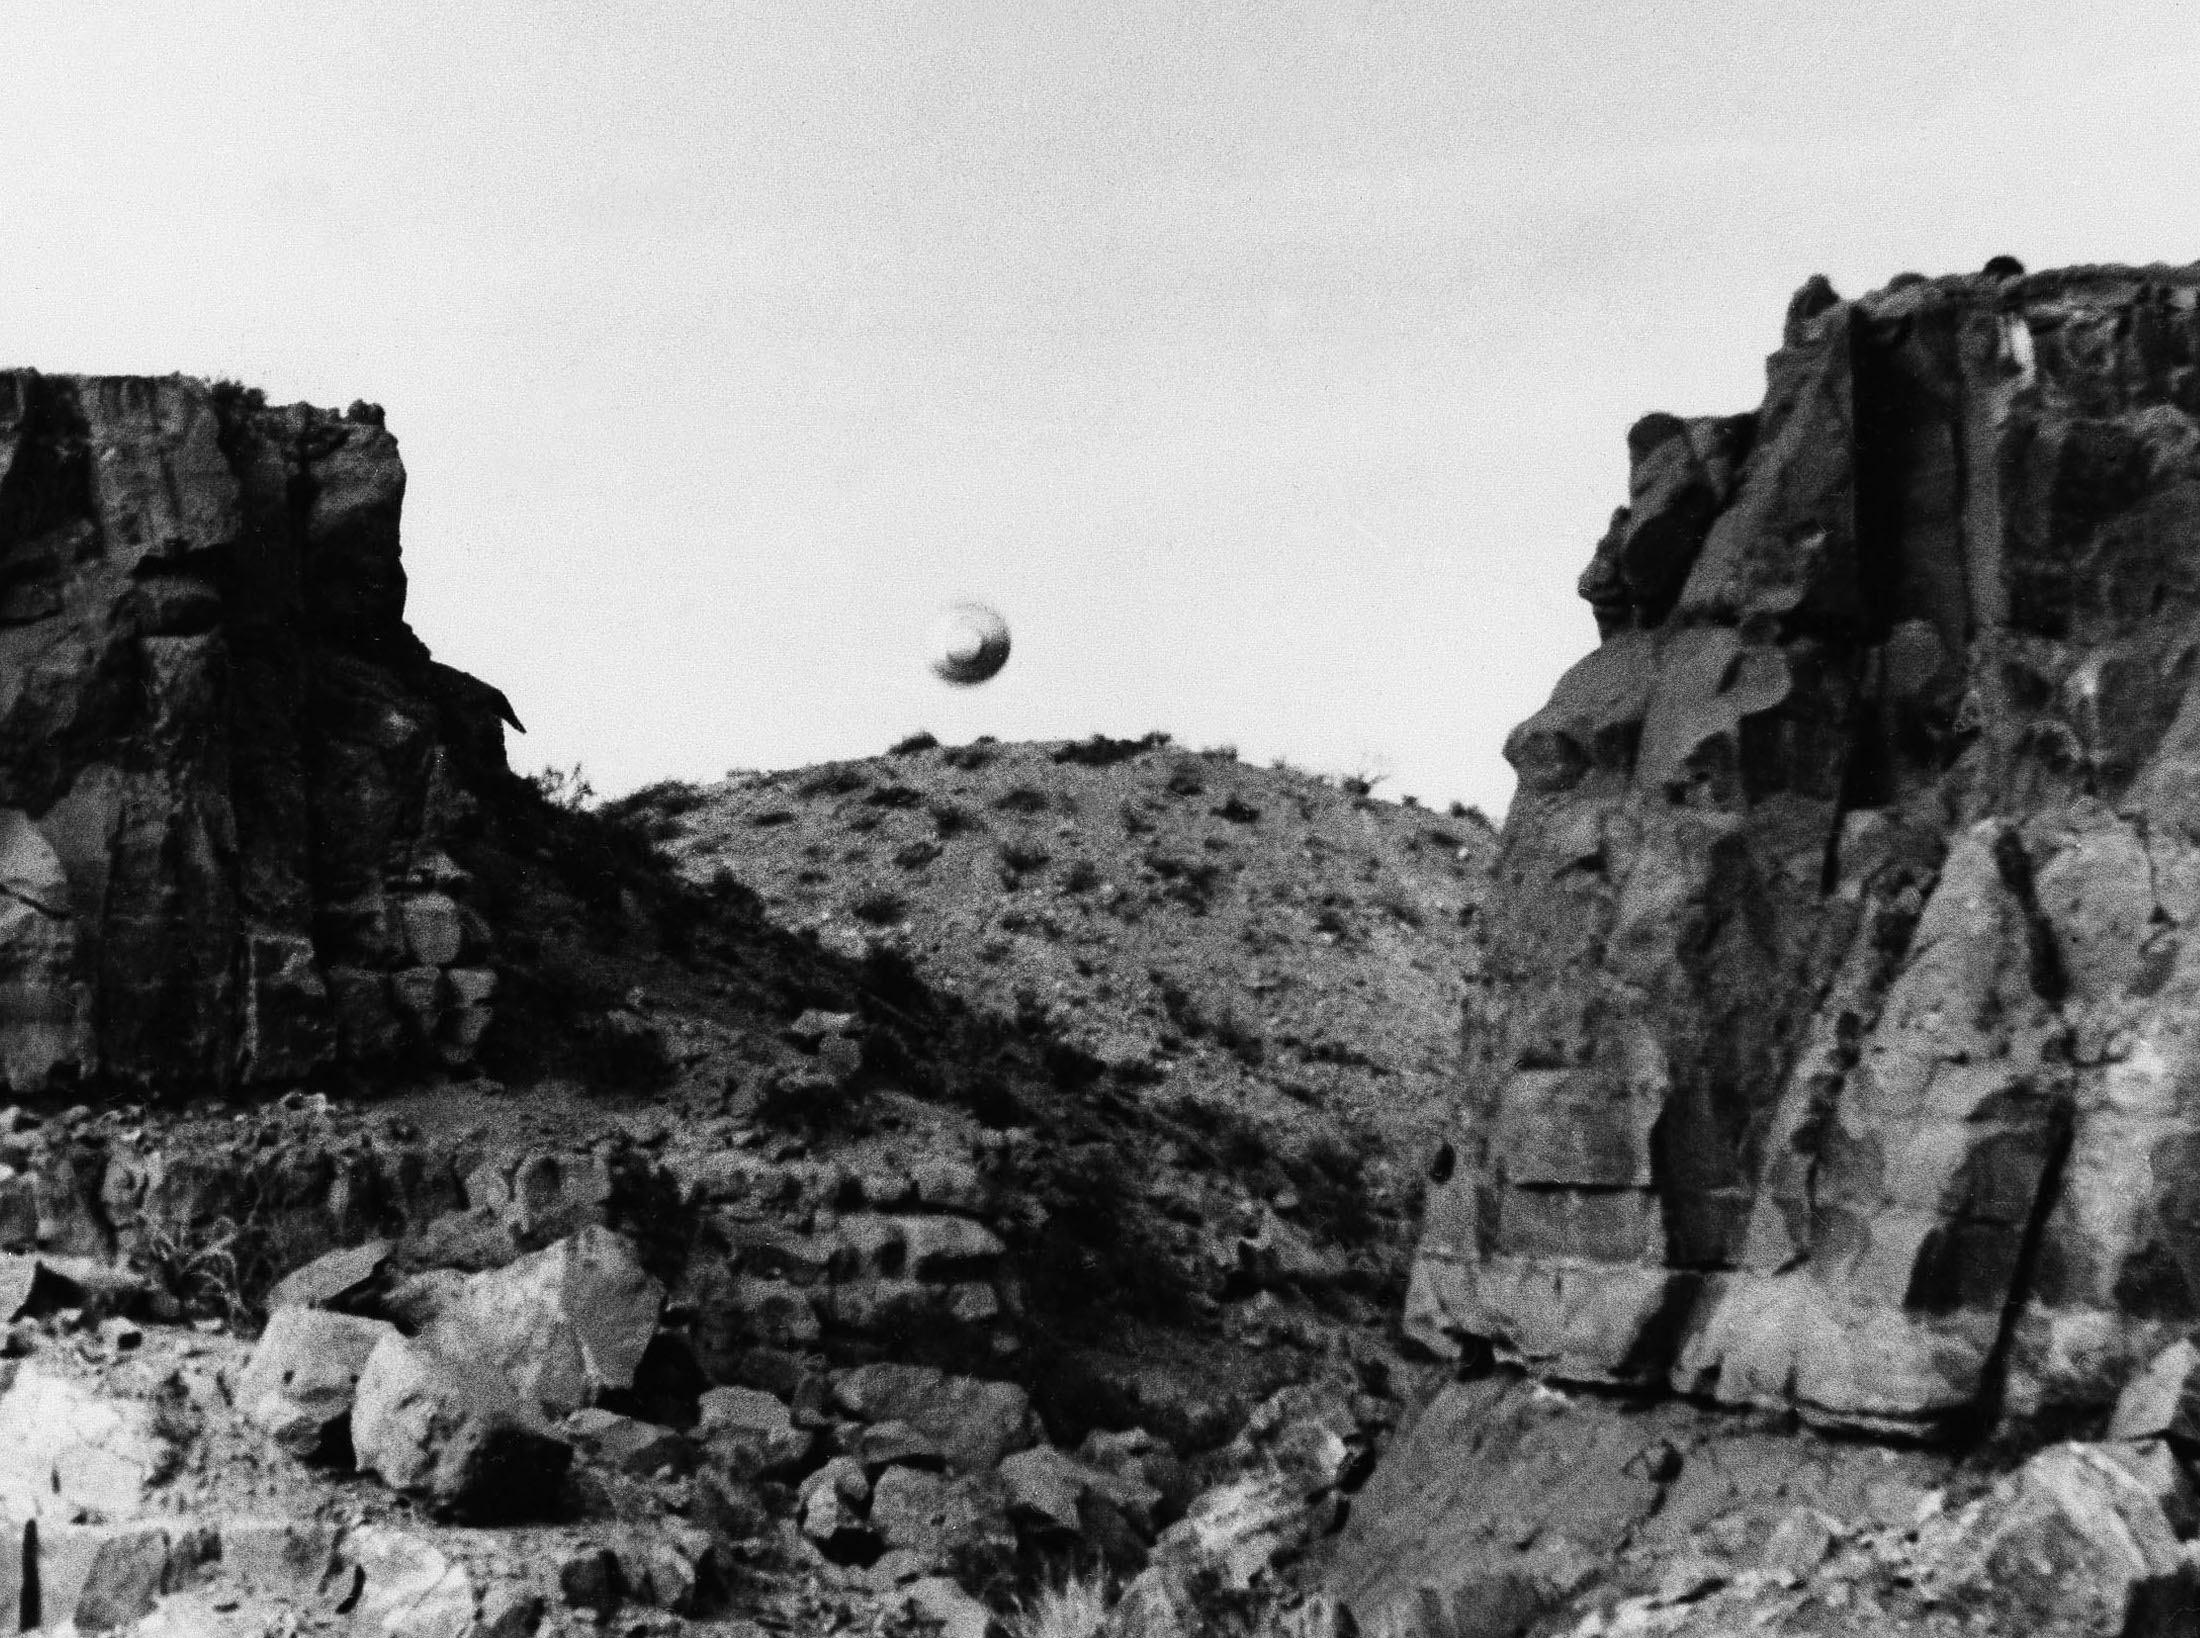 UFO sighted by a New Mexico State University student, West of Picacho Peak, Las Cruces, New Mexico, March 12, 1967